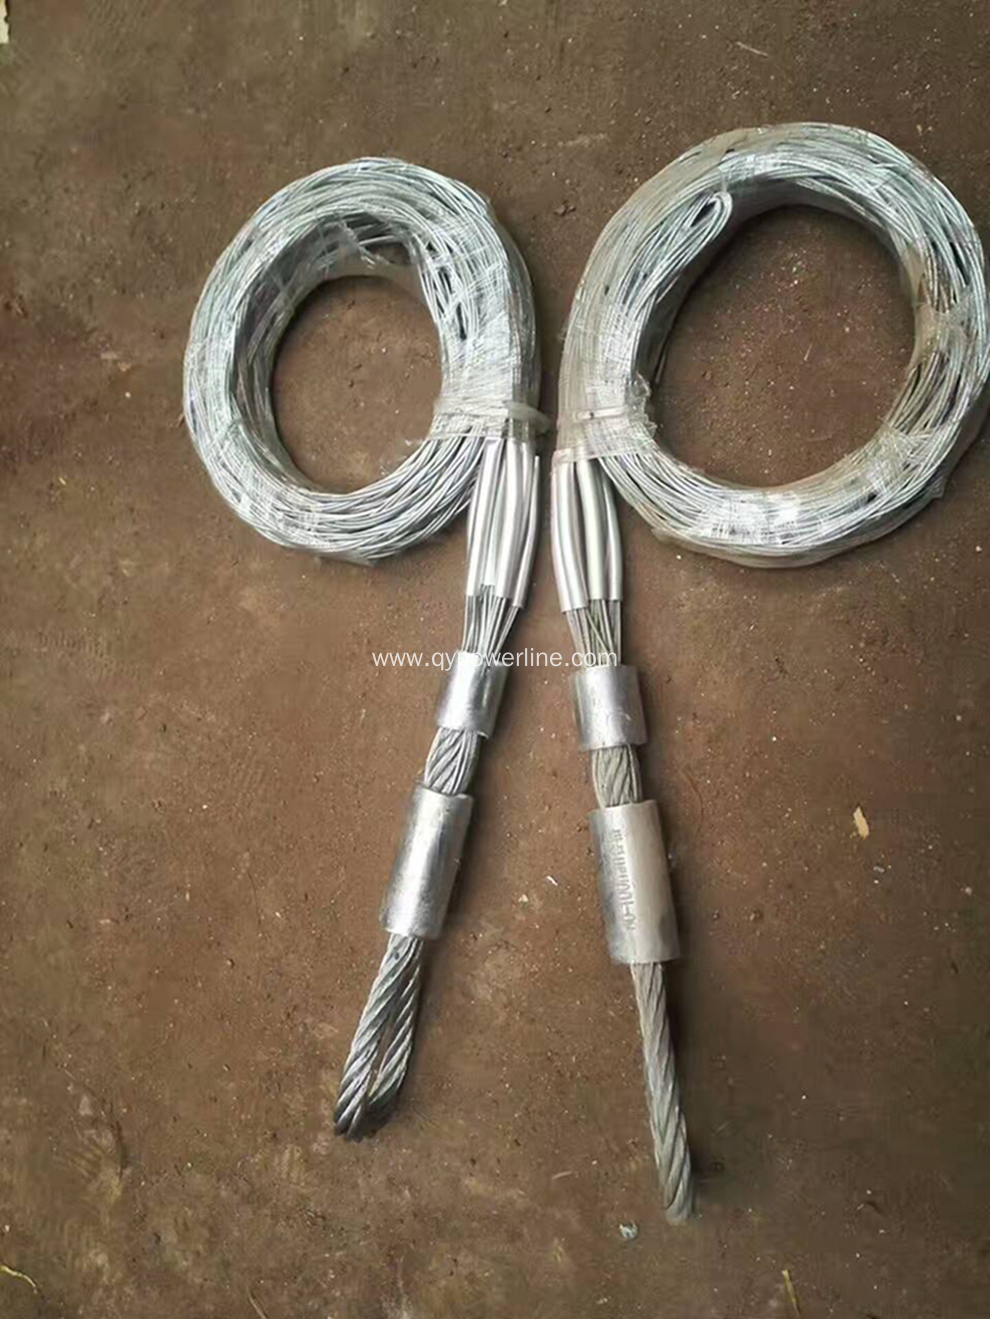 China Conductor Pulling Grip Cable Socks Manufacturers